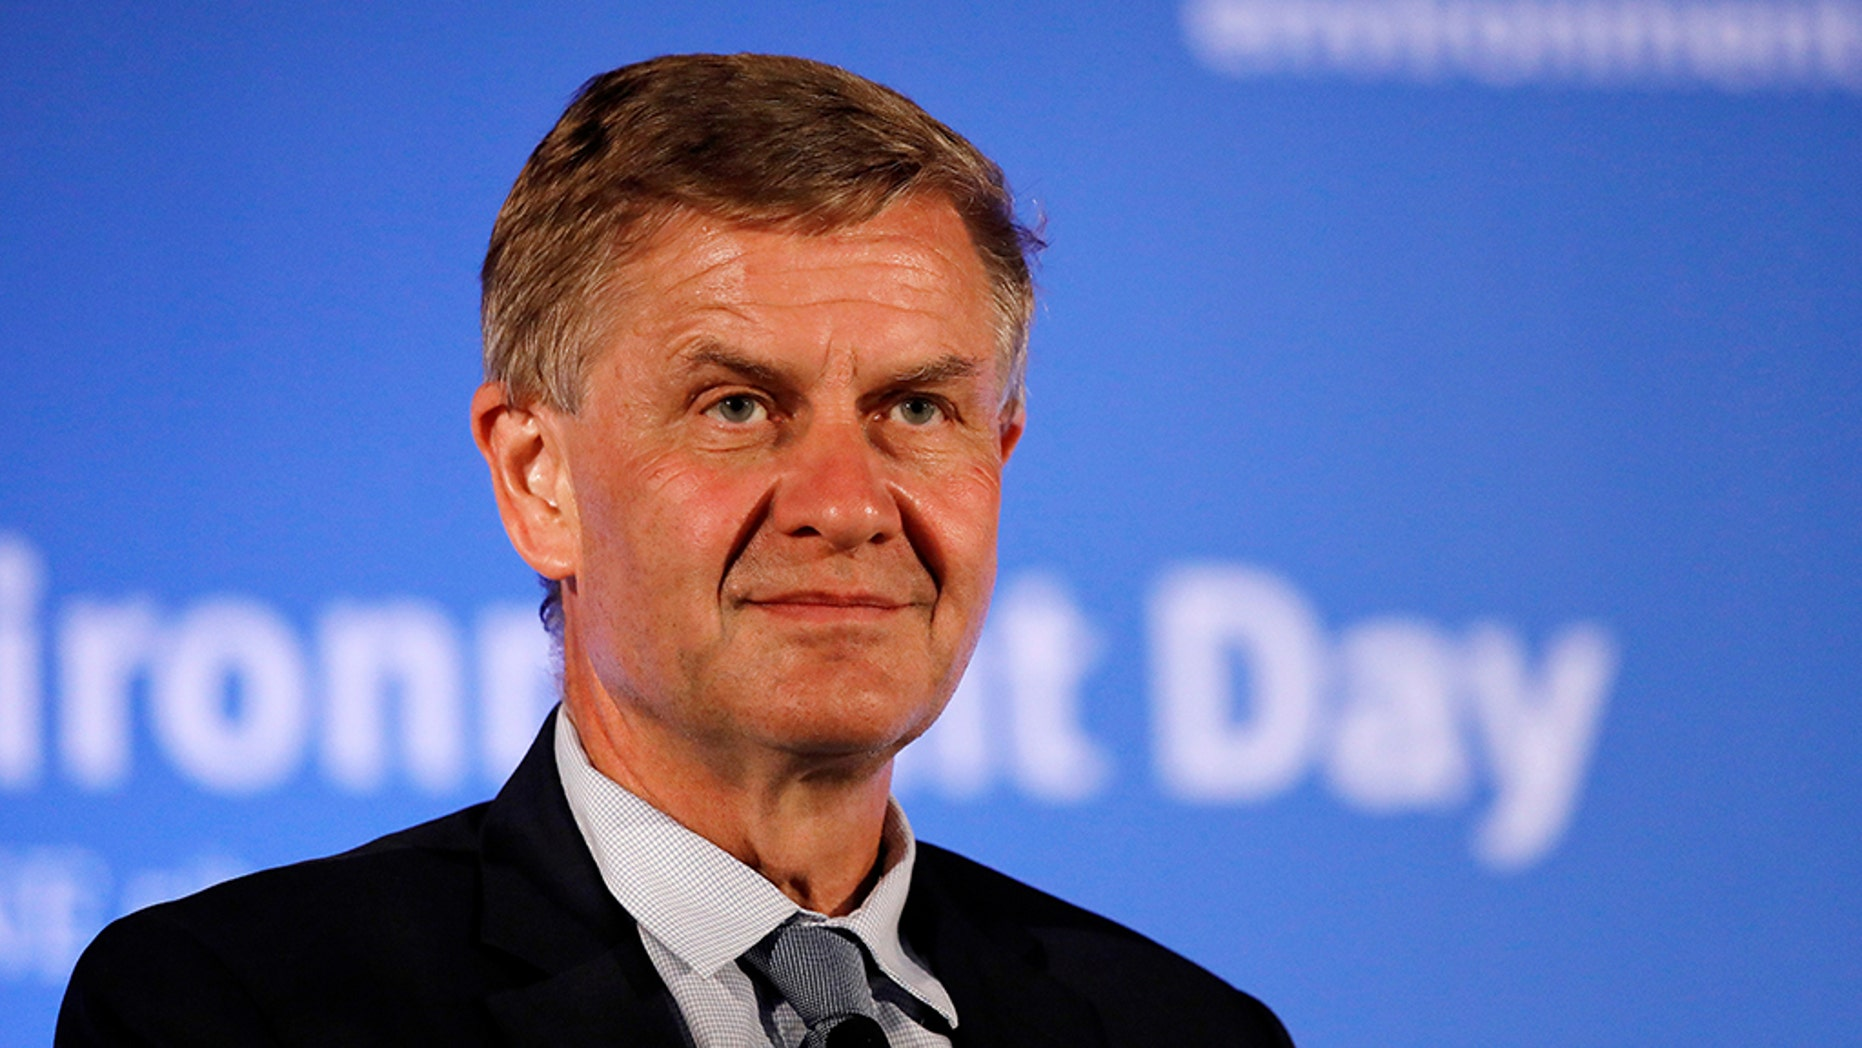 Erik Solheim, Executive Director of the United Nations Environment Program, listens to the audience at a symposium on World Environment Day in New Delhi, India, June 5, 2018. (Reuters)